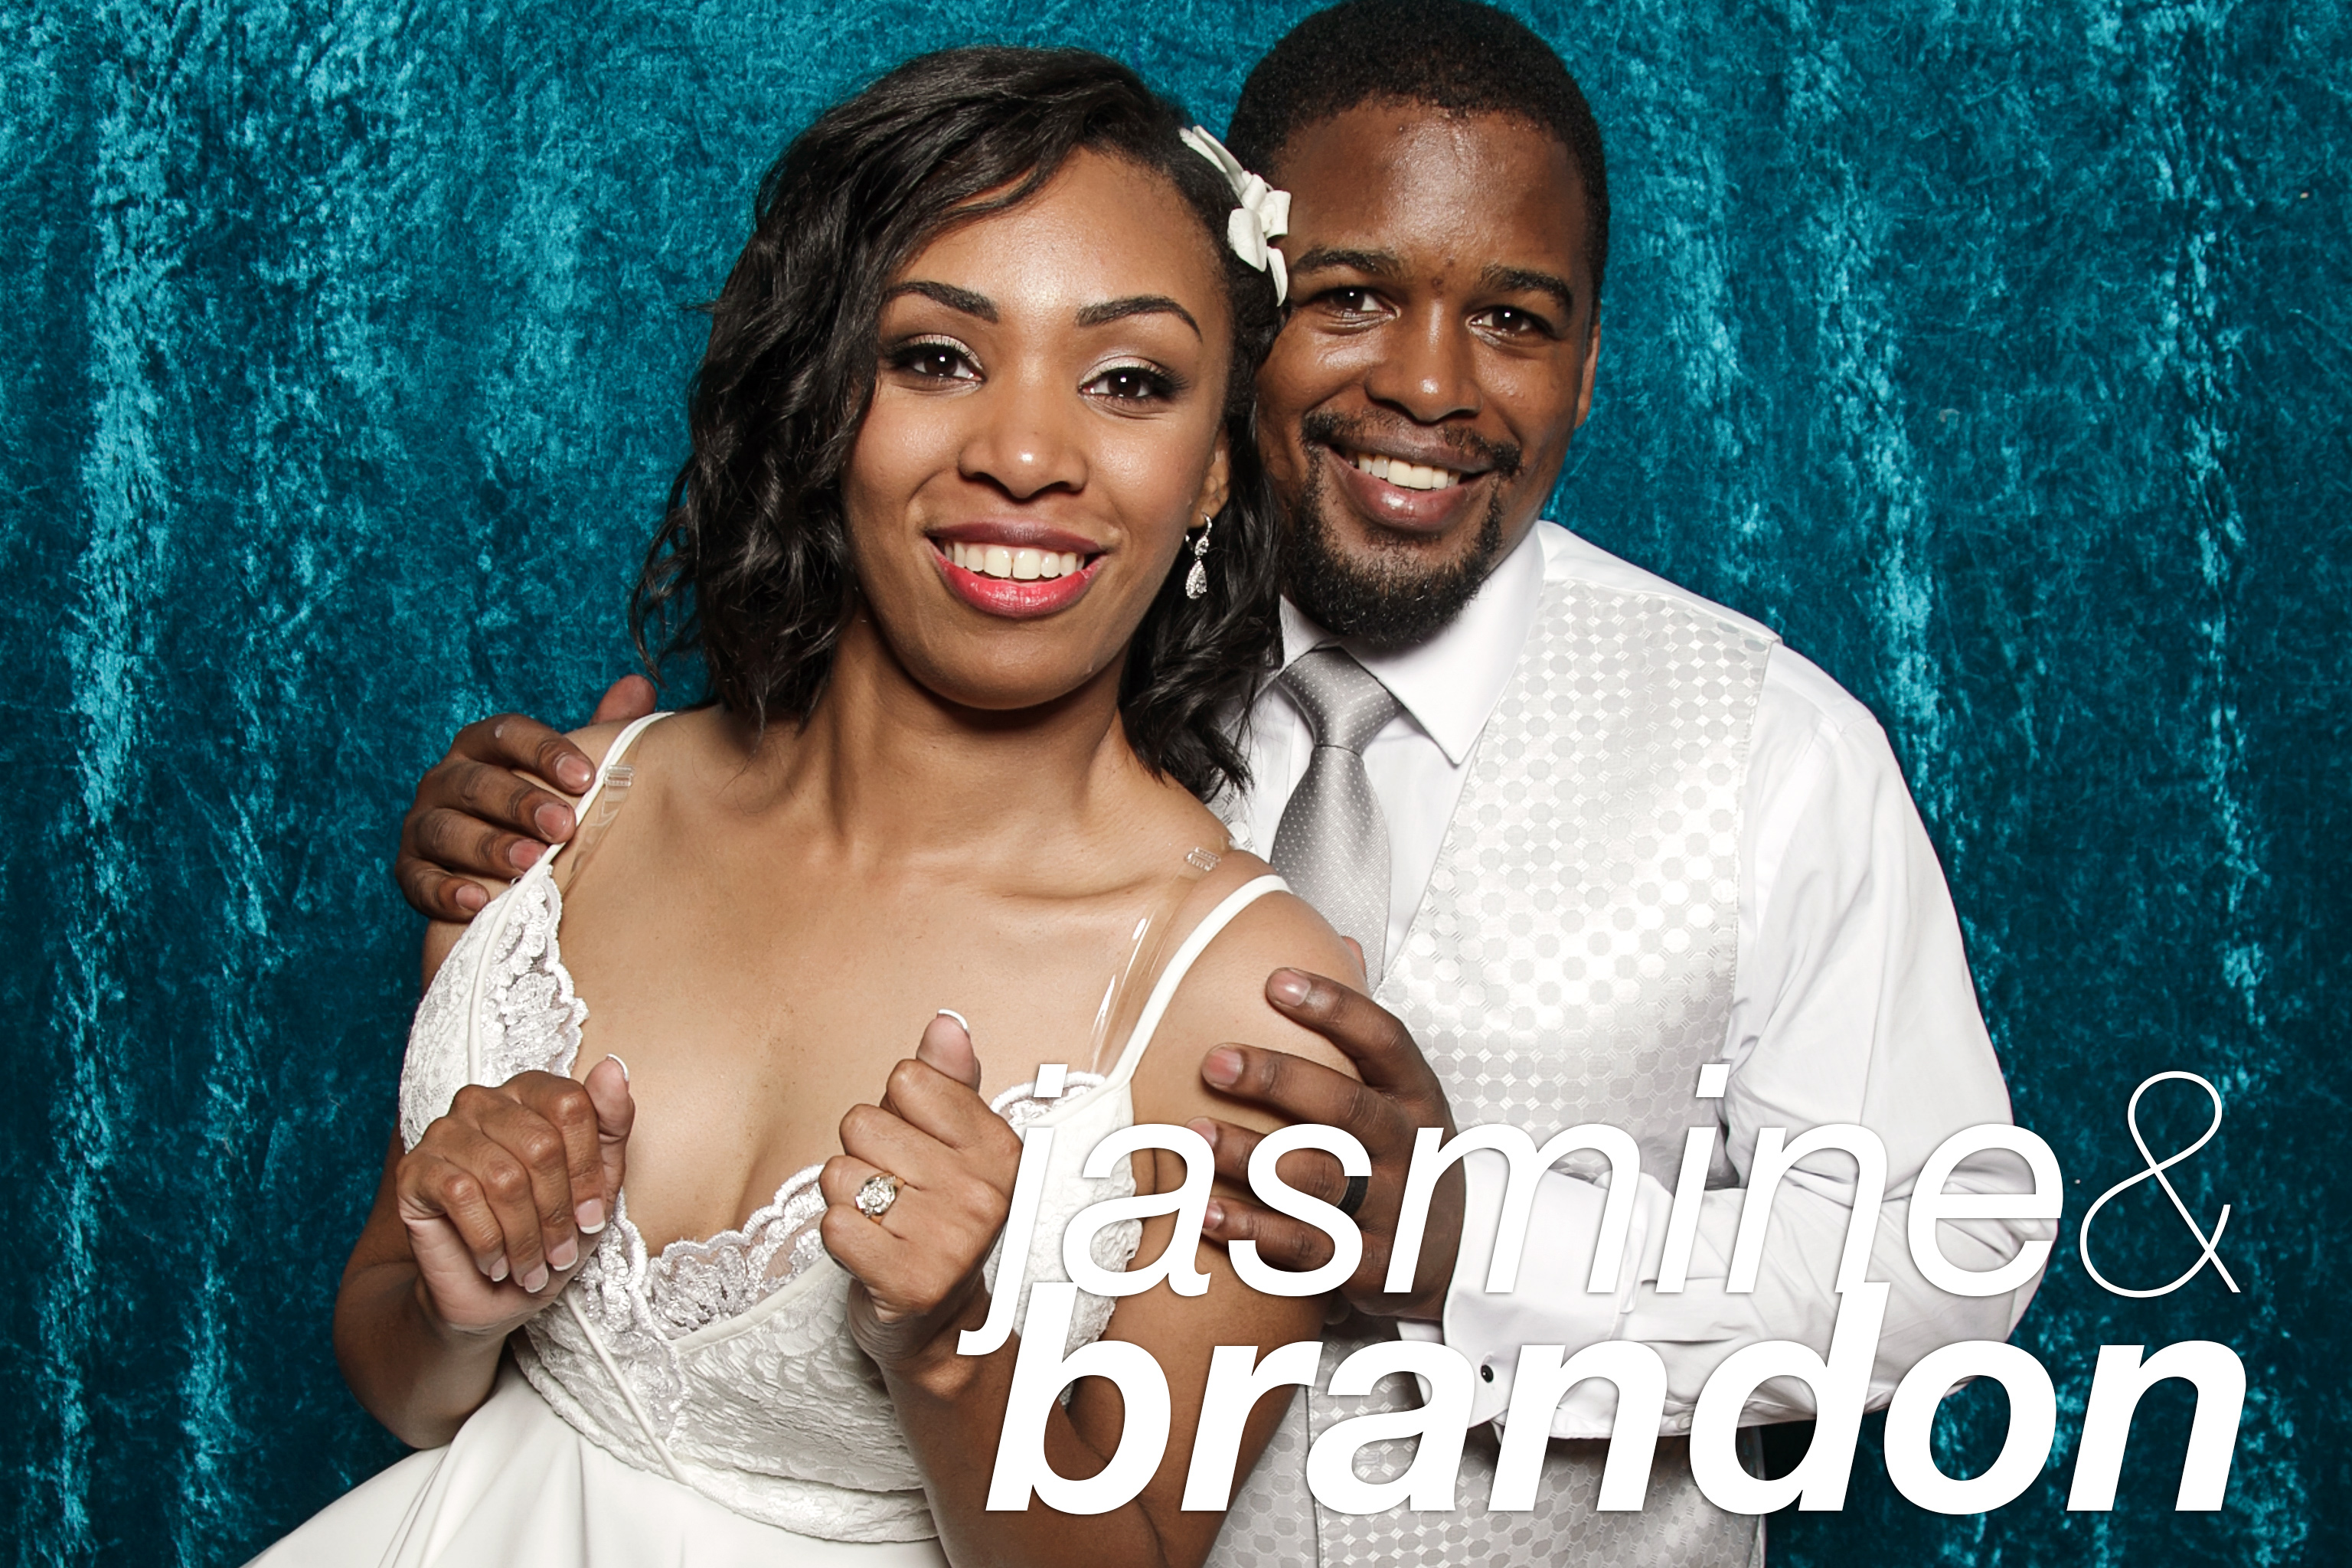 photo booth portraits from Brandon and Jasmine's wedding at the sheridan shore yacht club, august 2016